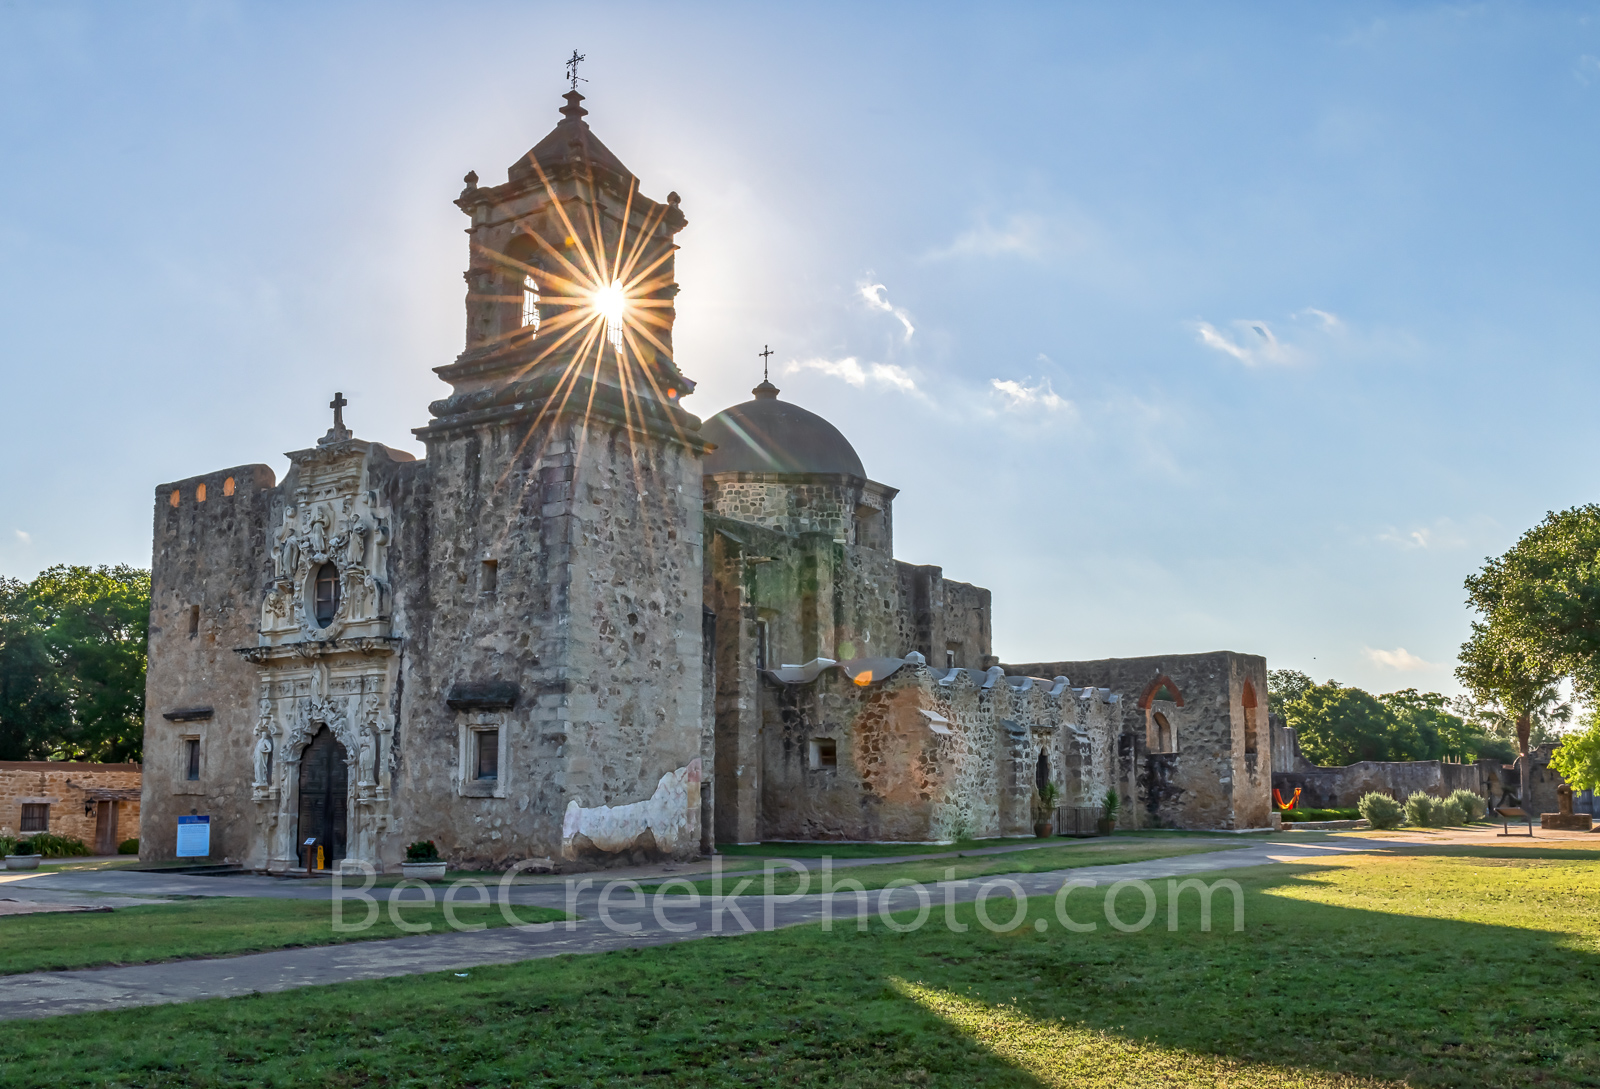 MIssion San Jose, San Antonio Missions National Historical Park, indians, Coahuiltecan tribe, star burst,, photo